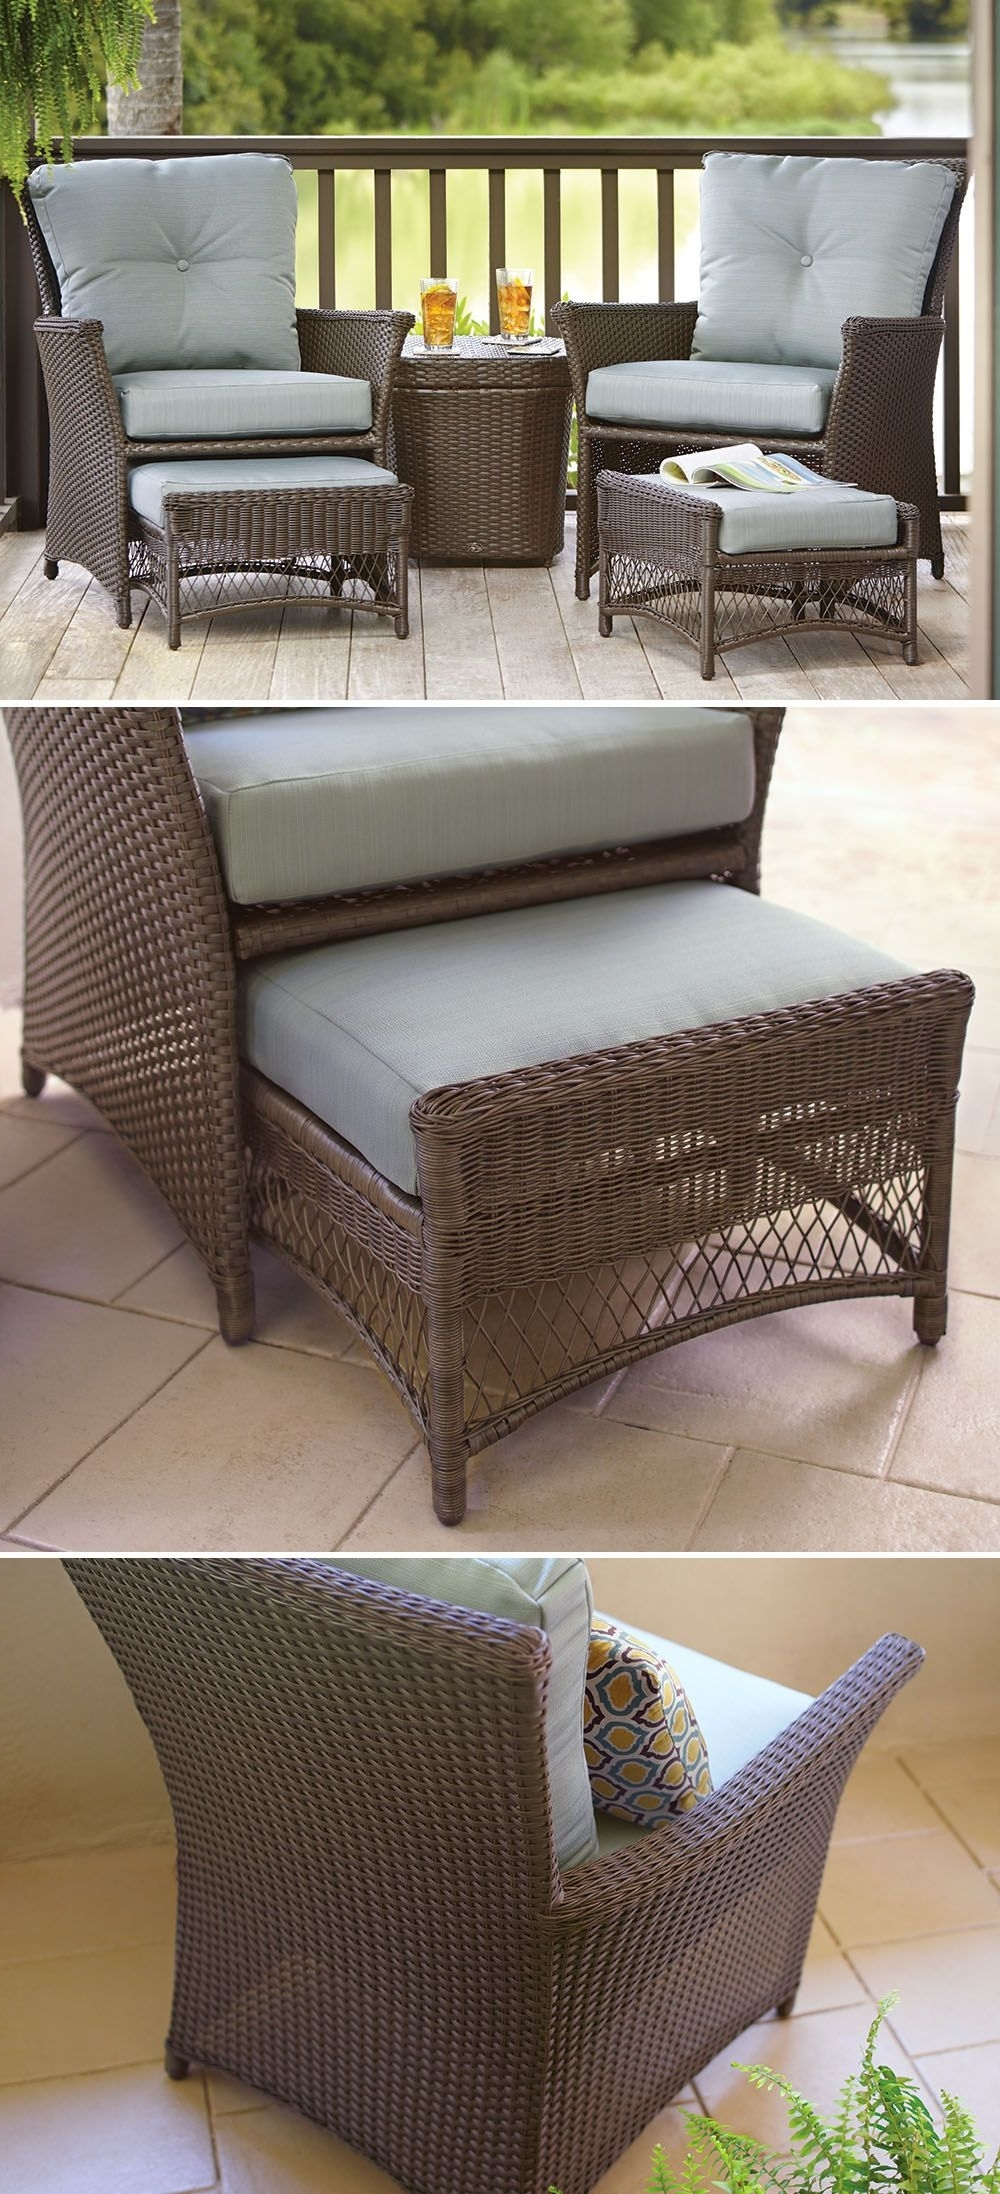 Trendy This Affordable Patio Set Is Just The Right Size For Your Small With Patio Conversation Sets With Storage (View 18 of 20)